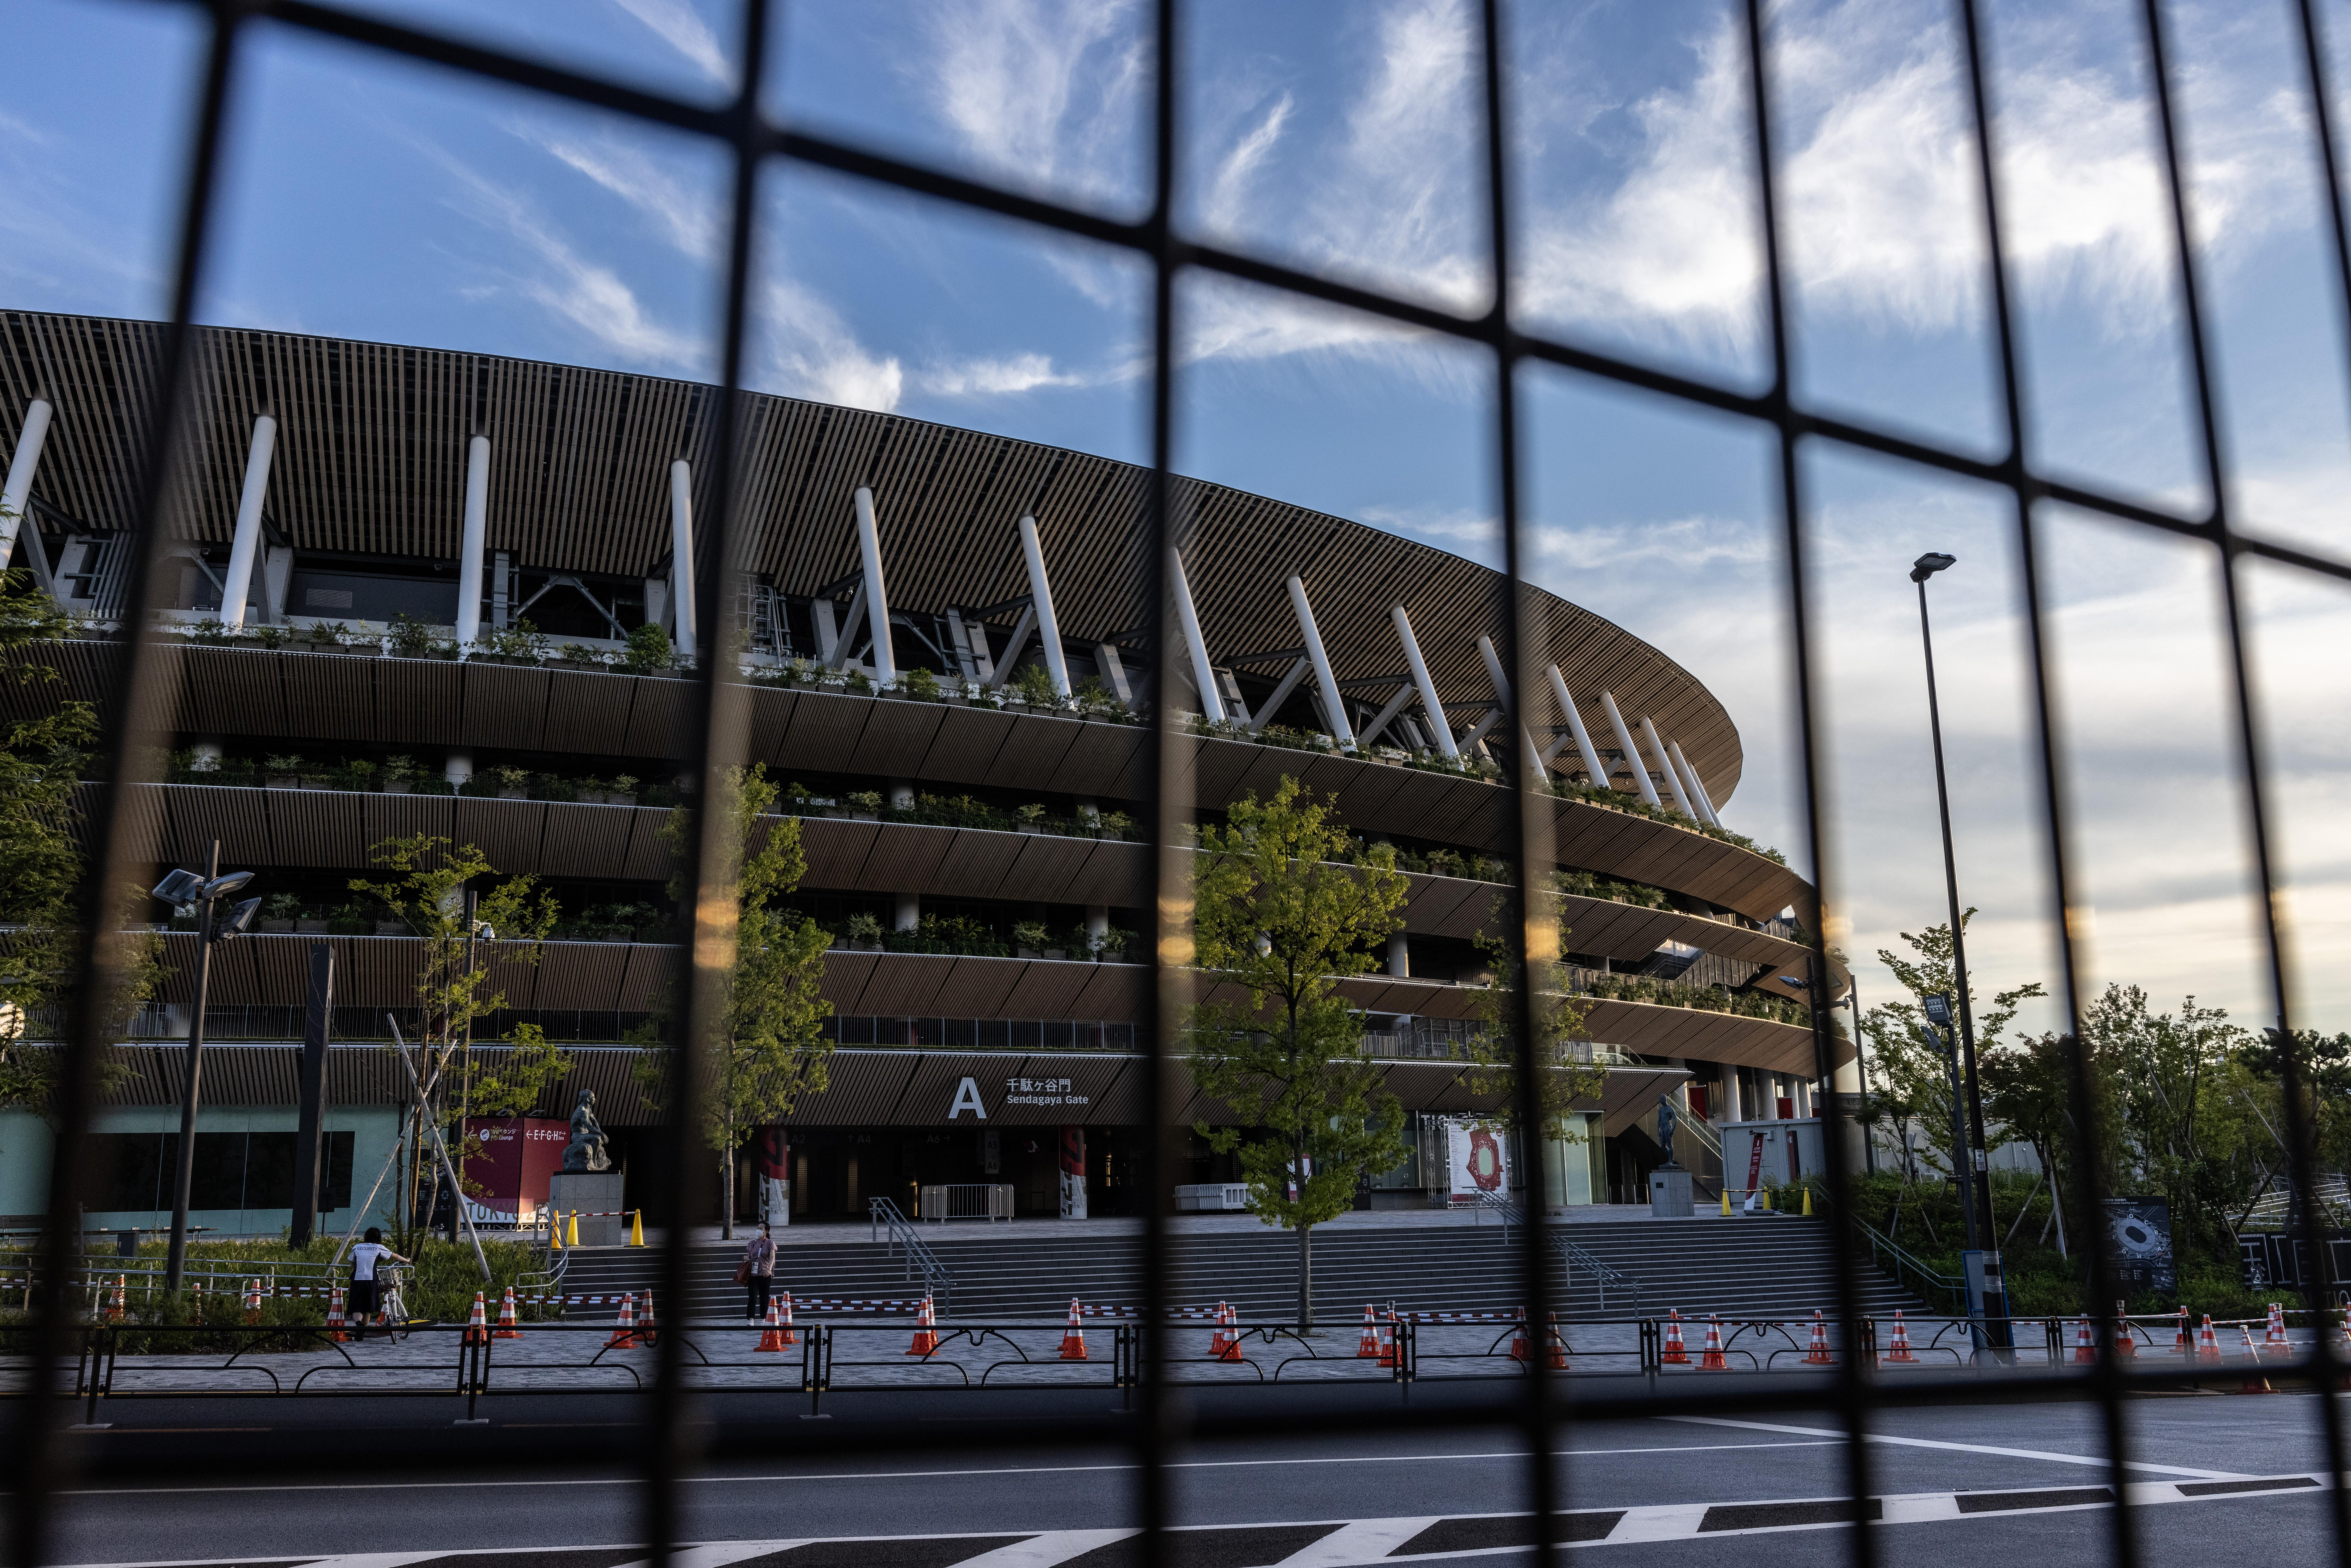 TOKYO, JAPAN - JULY 21: Tokyo Olympic stadium is pictured through a security fence on July 21, 2021 in Tokyo, Japan. With just two days until the Olympics opening ceremony, Toshiro Muto, the head of the Tokyo 2020 organising committee has stated that he will not rule out cancellation of the Games as more than seventy people associated with the event have already tested positive for coronavirus. (Photo by Carl Court/Getty Images)